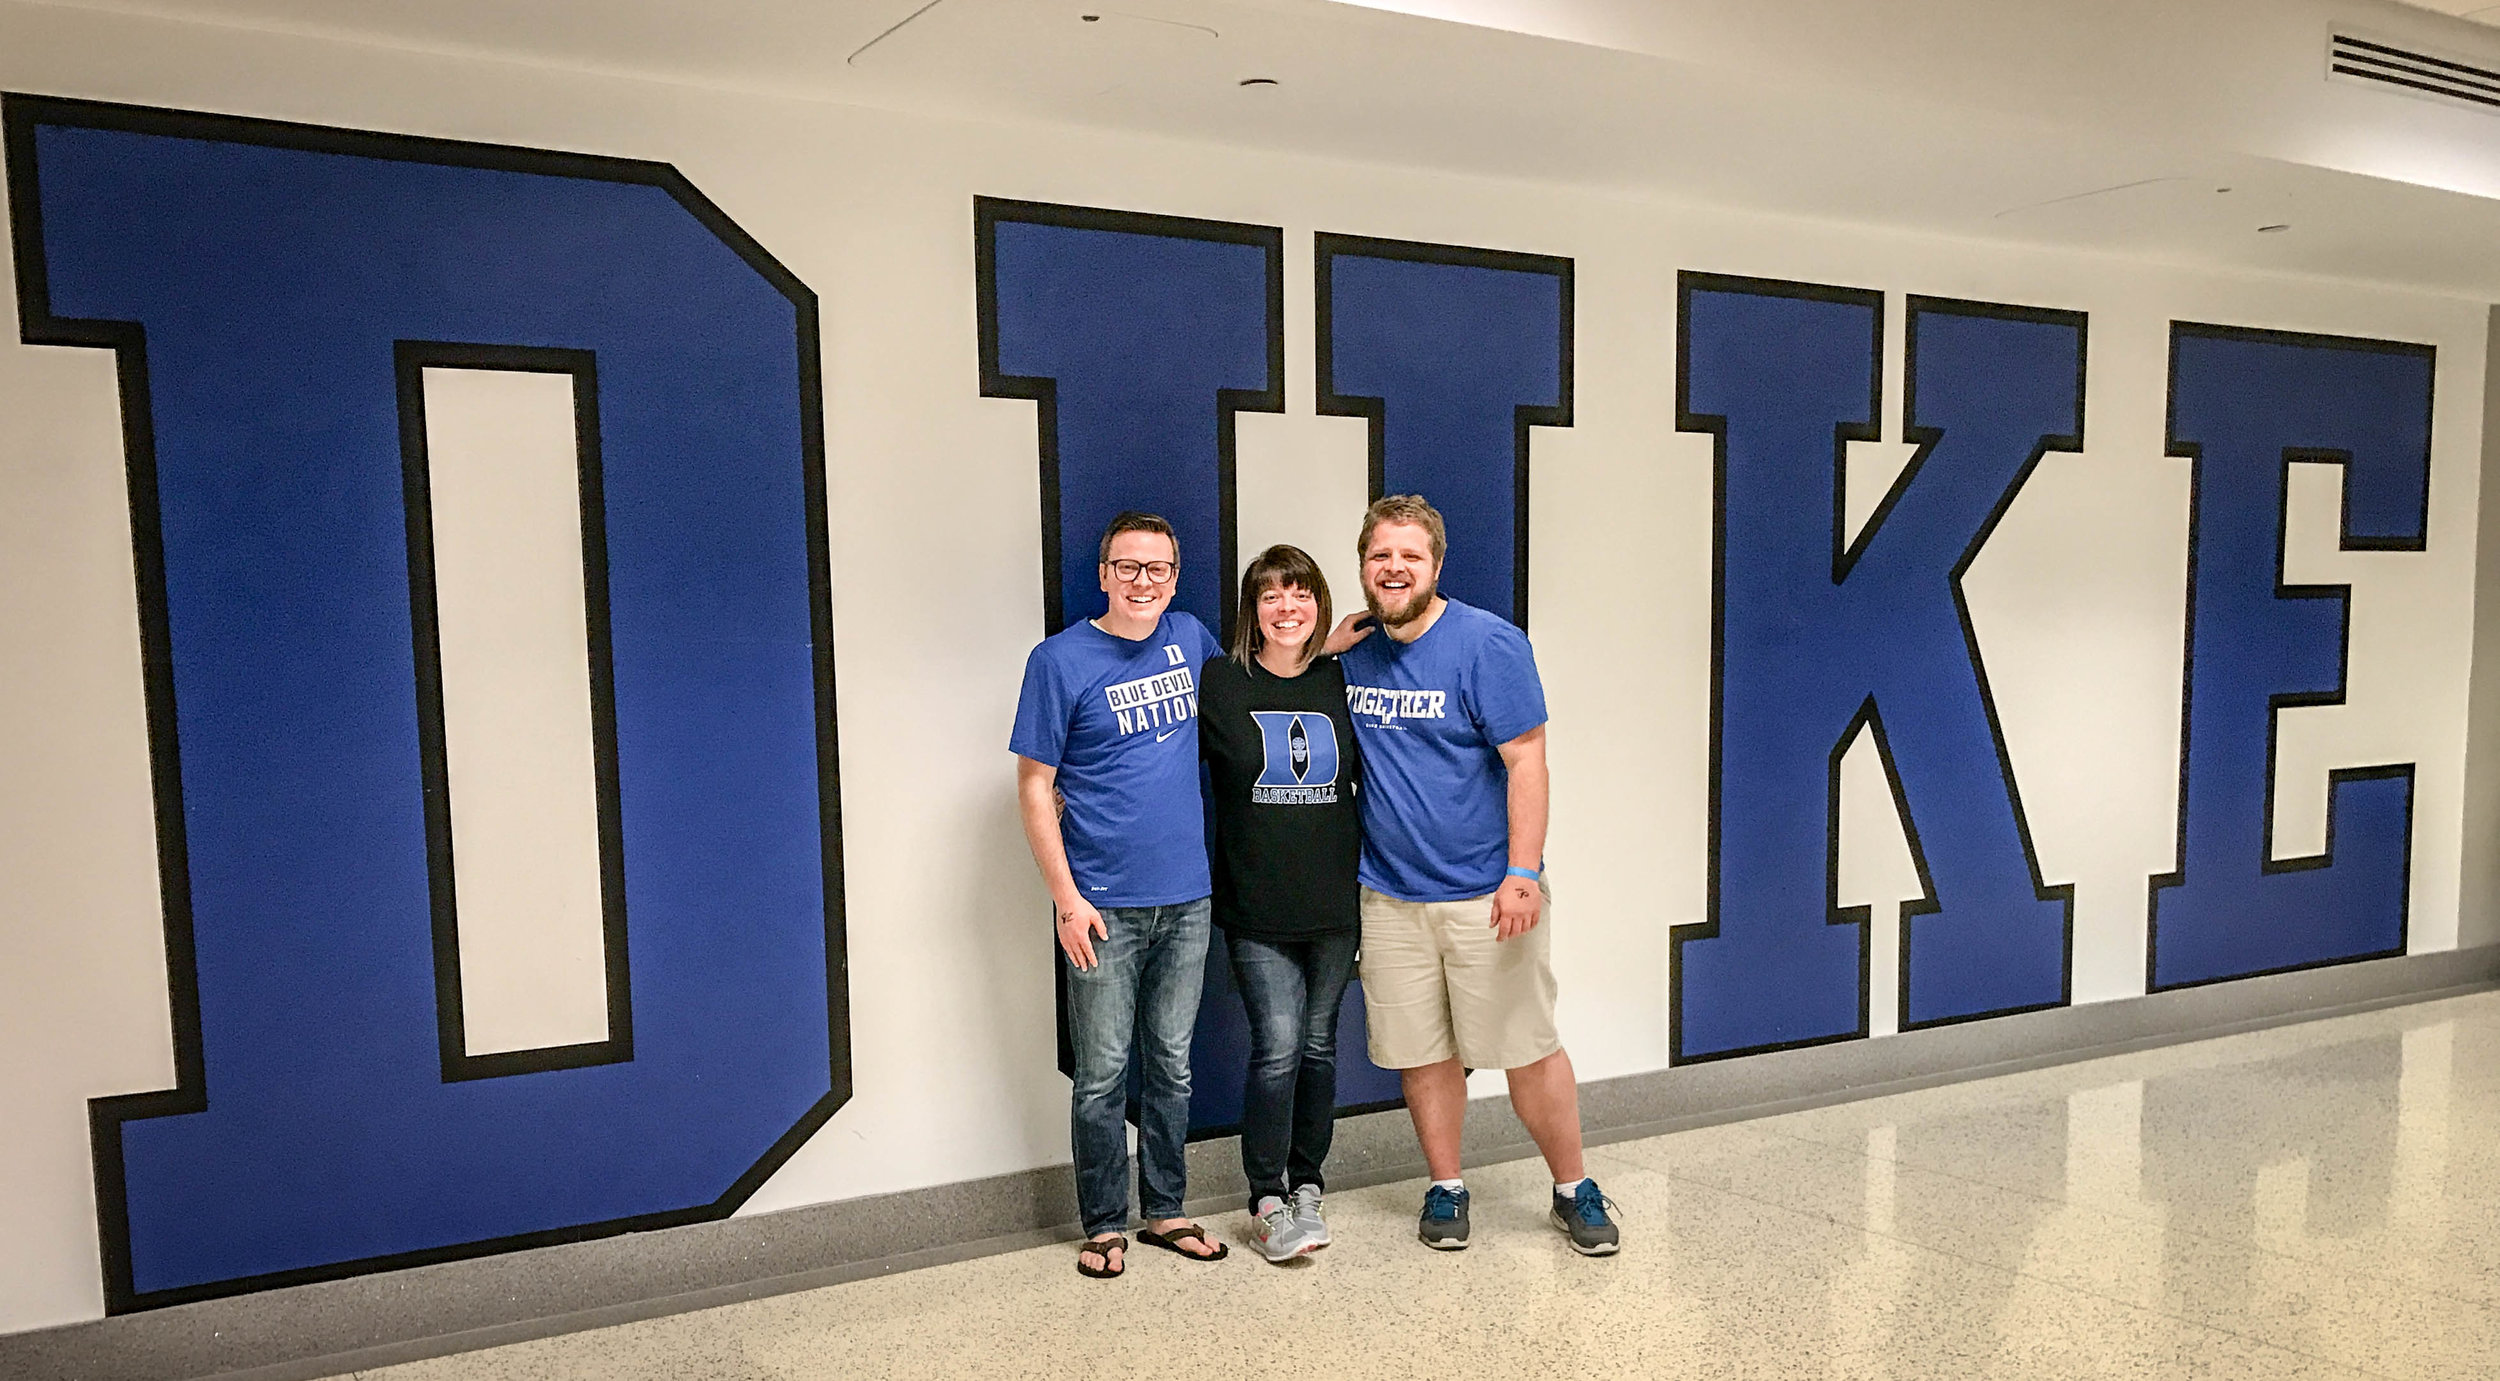 After the Duke game (Feb 28, 2017). Duke won! It was also senior night so several seniors were honored during the game.